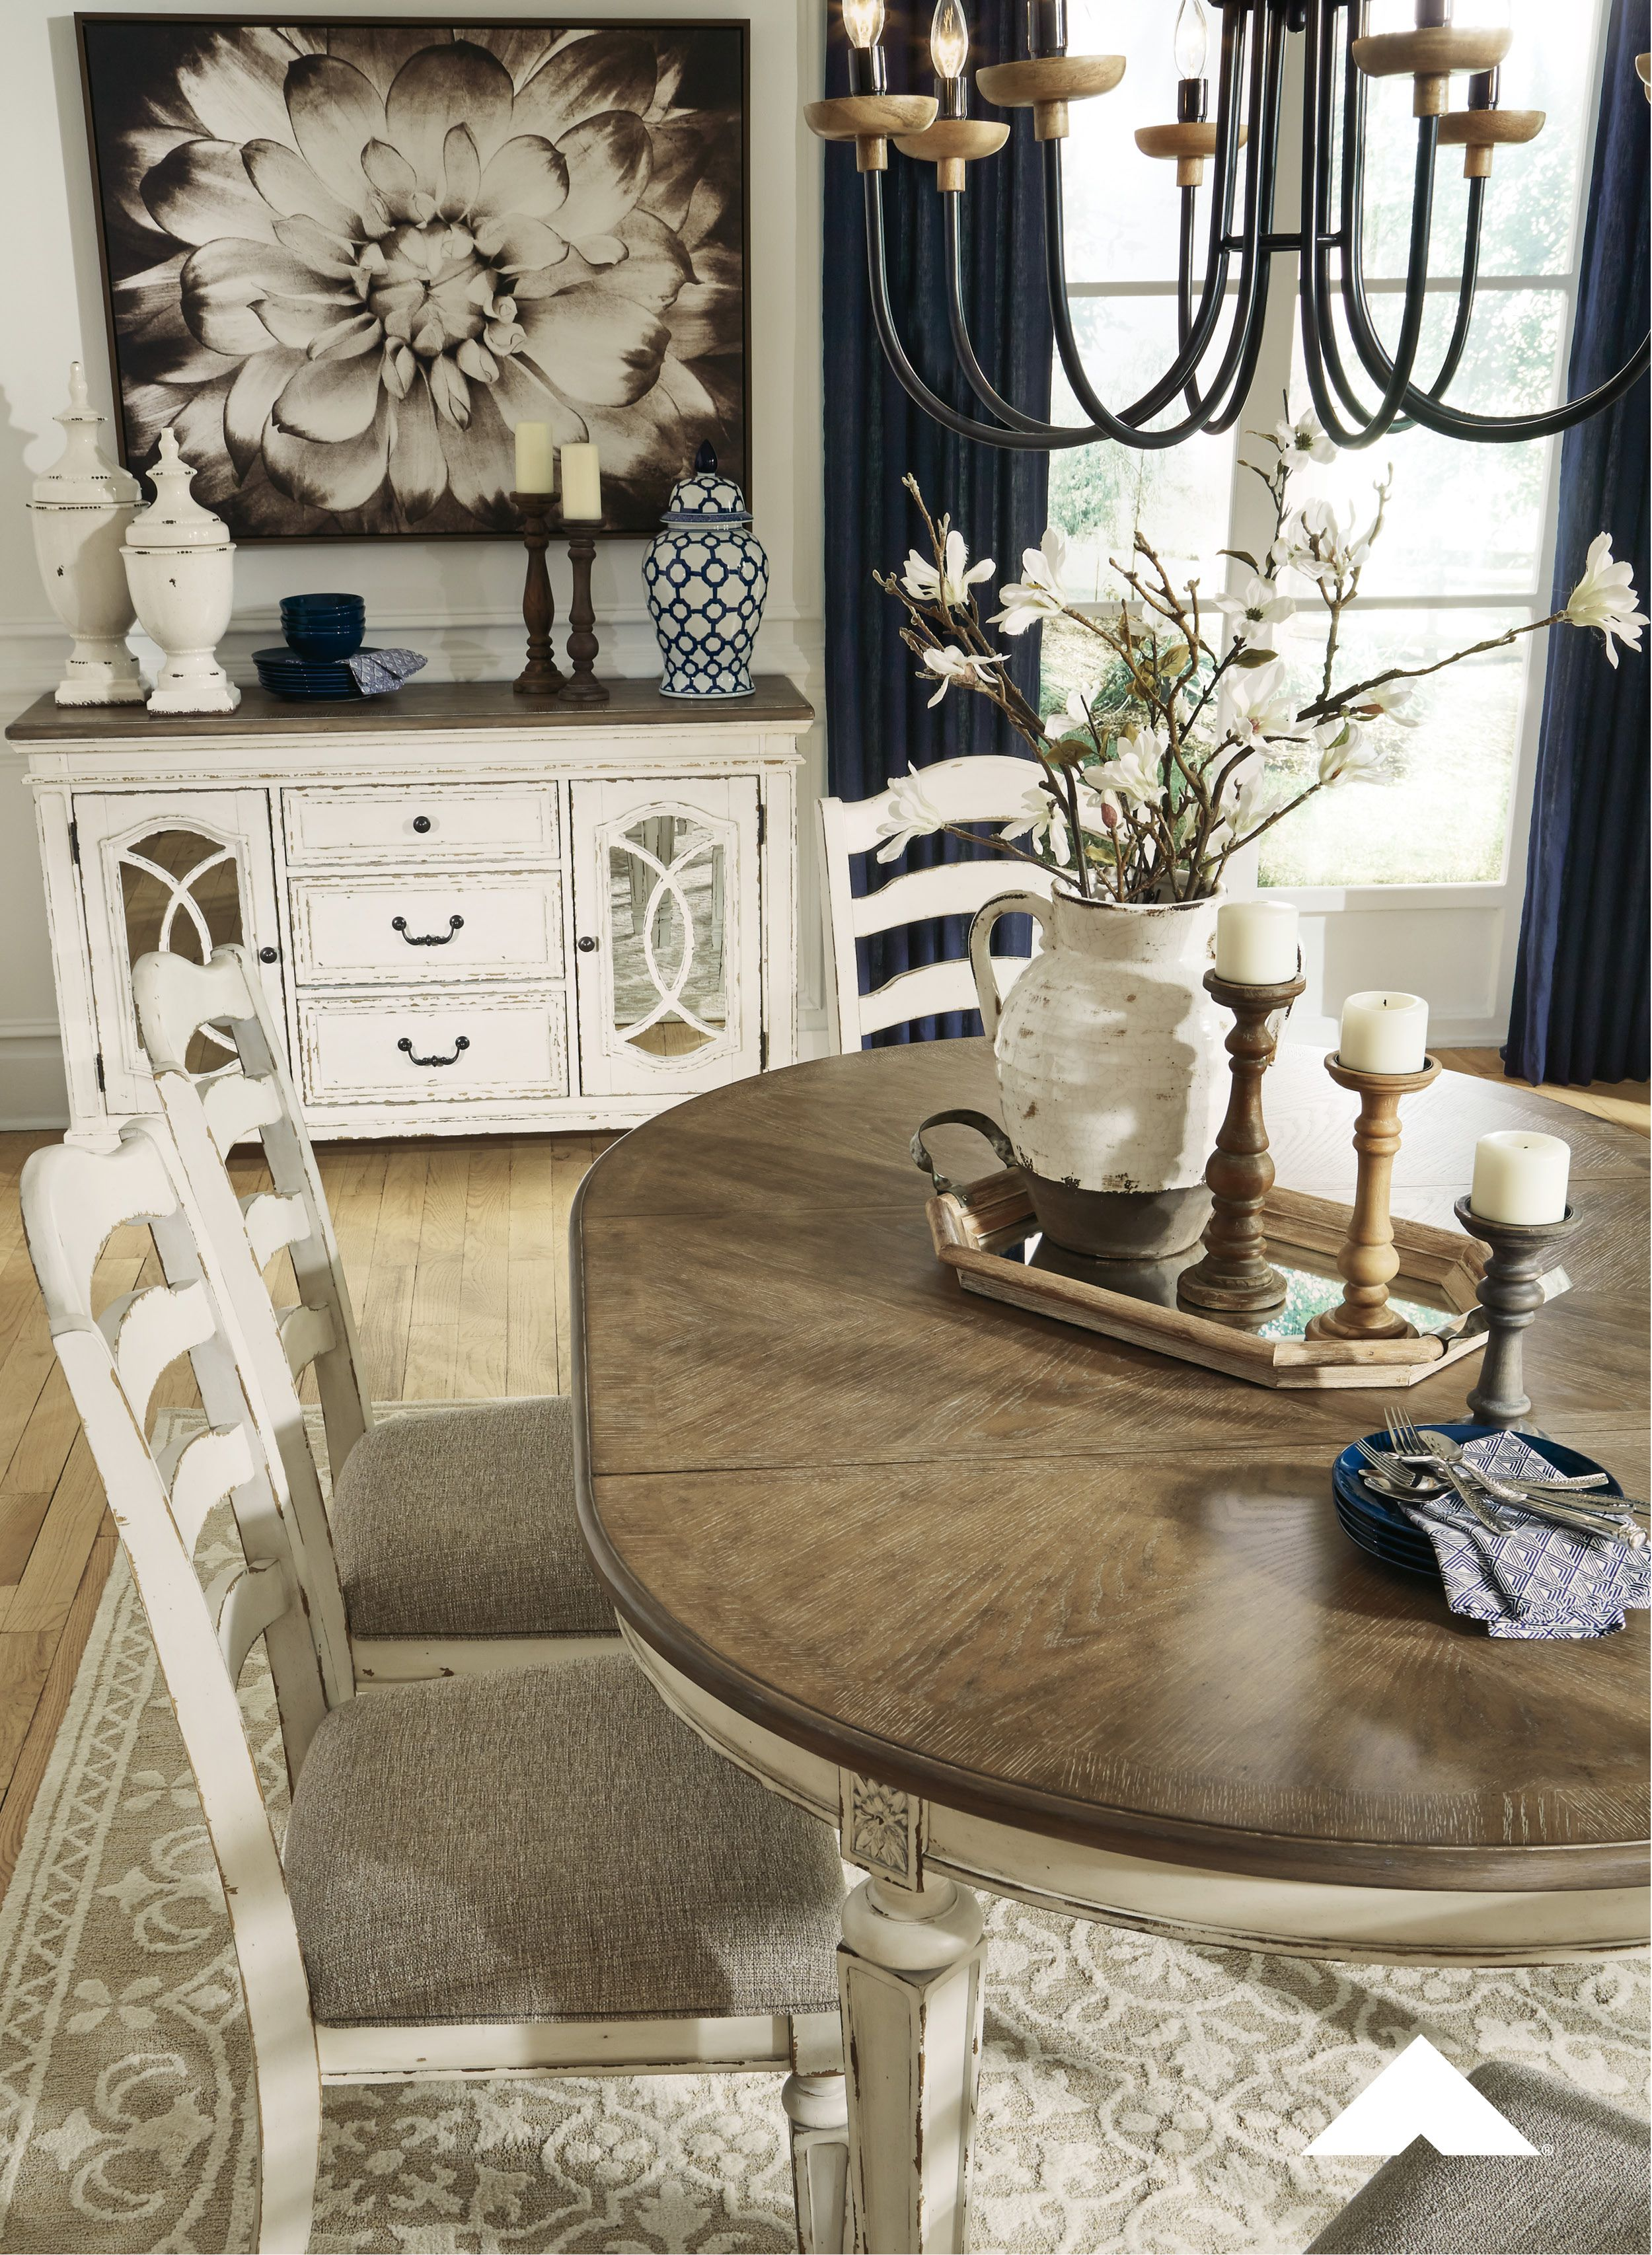 Realyn Dining Room Set By Ashley Furniture Bon Appetite The Realyn Dining Roo Farmhouse Dining Rooms Decor Farmhouse Dining Room Table Farmhouse Dining Room